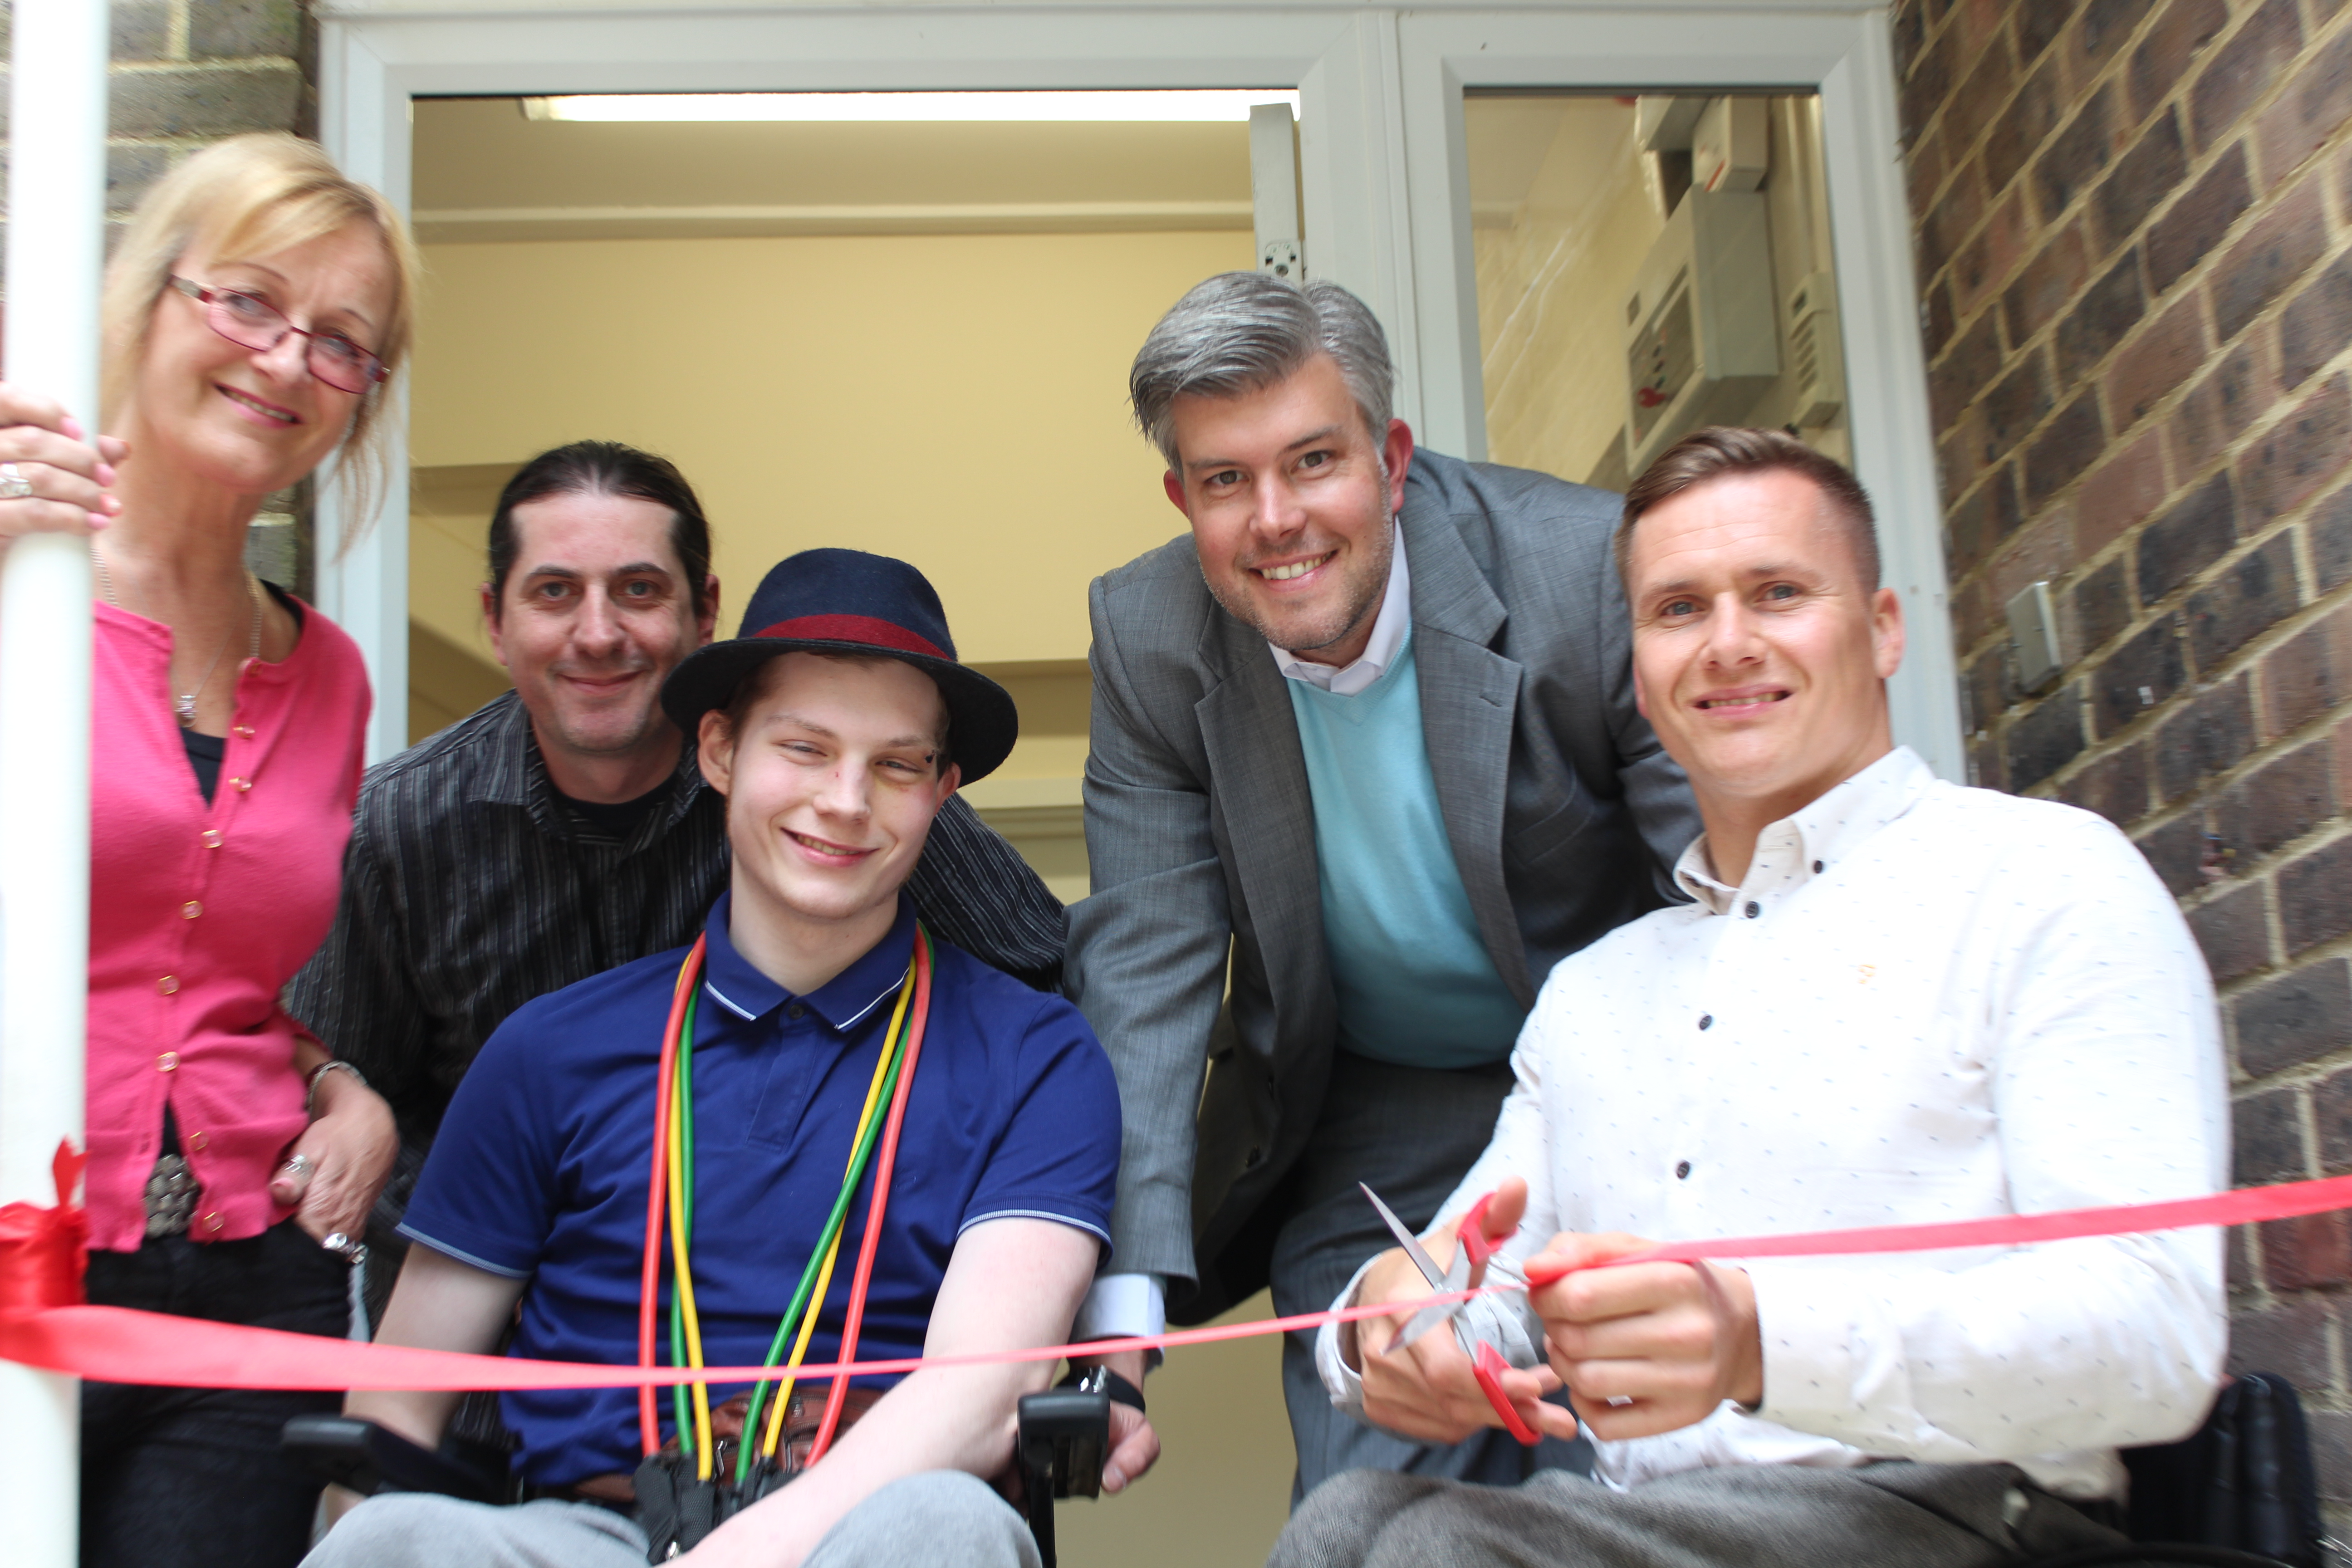 Paralympic Medalist Helps Social Care Provider Celebrate New Short Breaks Service